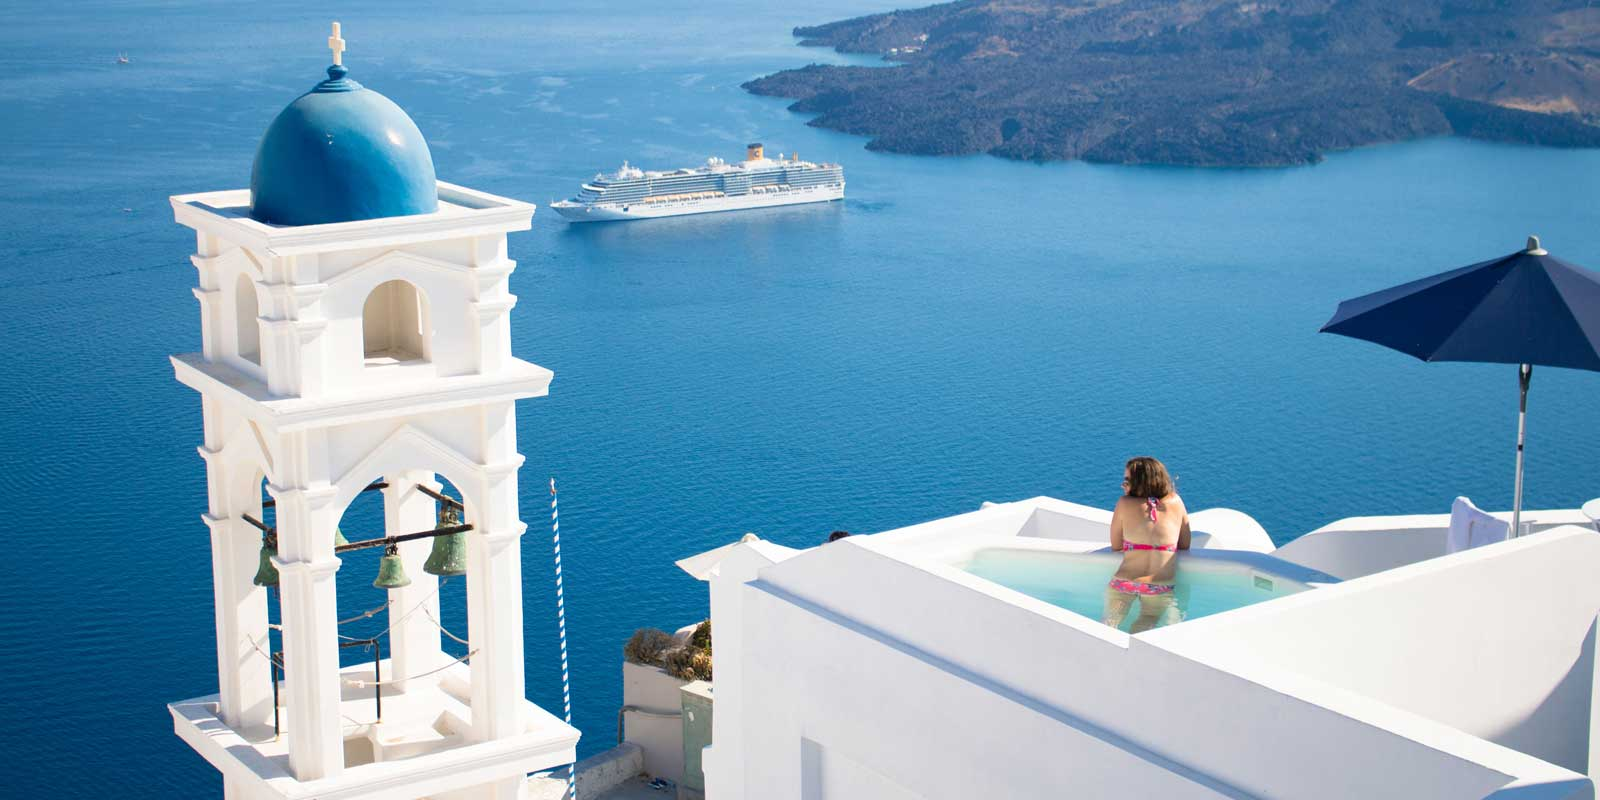 Ocean landscape view of Santorini, Greece showing a white bell tower with a blue dome, a woman in a rooftop pool, and a cruise ship in the distance.